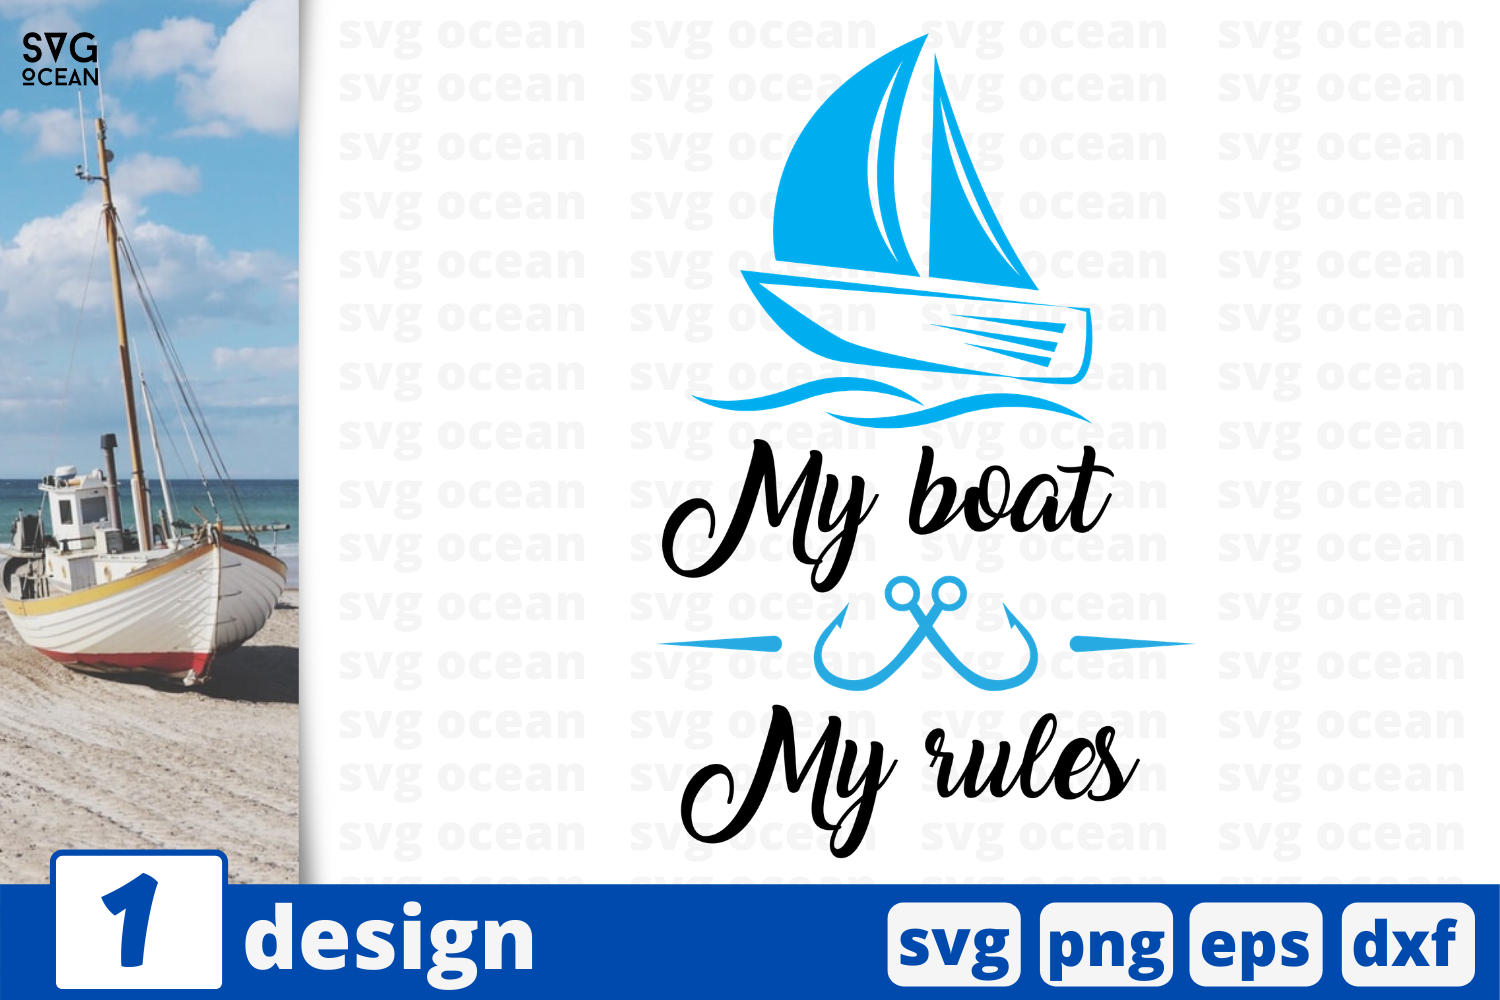 Download Free My Boat My Rules Graphic By Svgocean Creative Fabrica for Cricut Explore, Silhouette and other cutting machines.